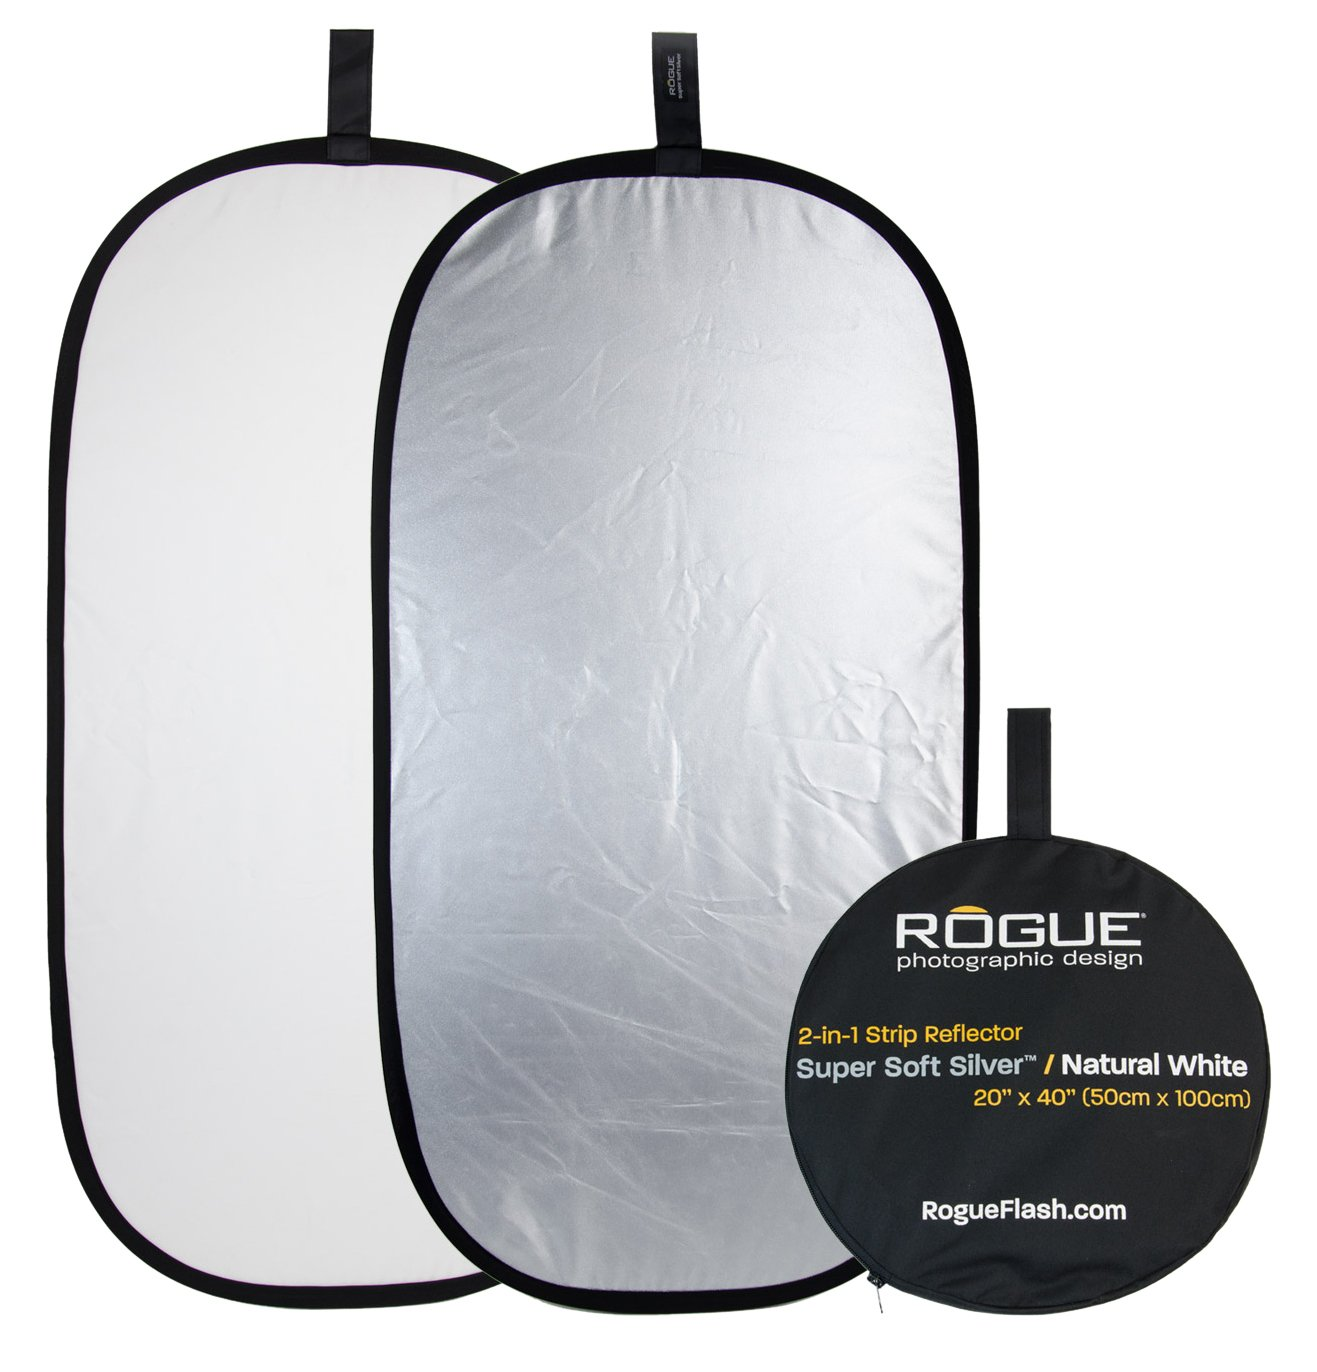 Rogue Photographic Design 2-in-1 Collapsible Reflector 20 x 40, Super Soft Silver/Natural White (ROGUE2040SW) by Rogue Photographic Design